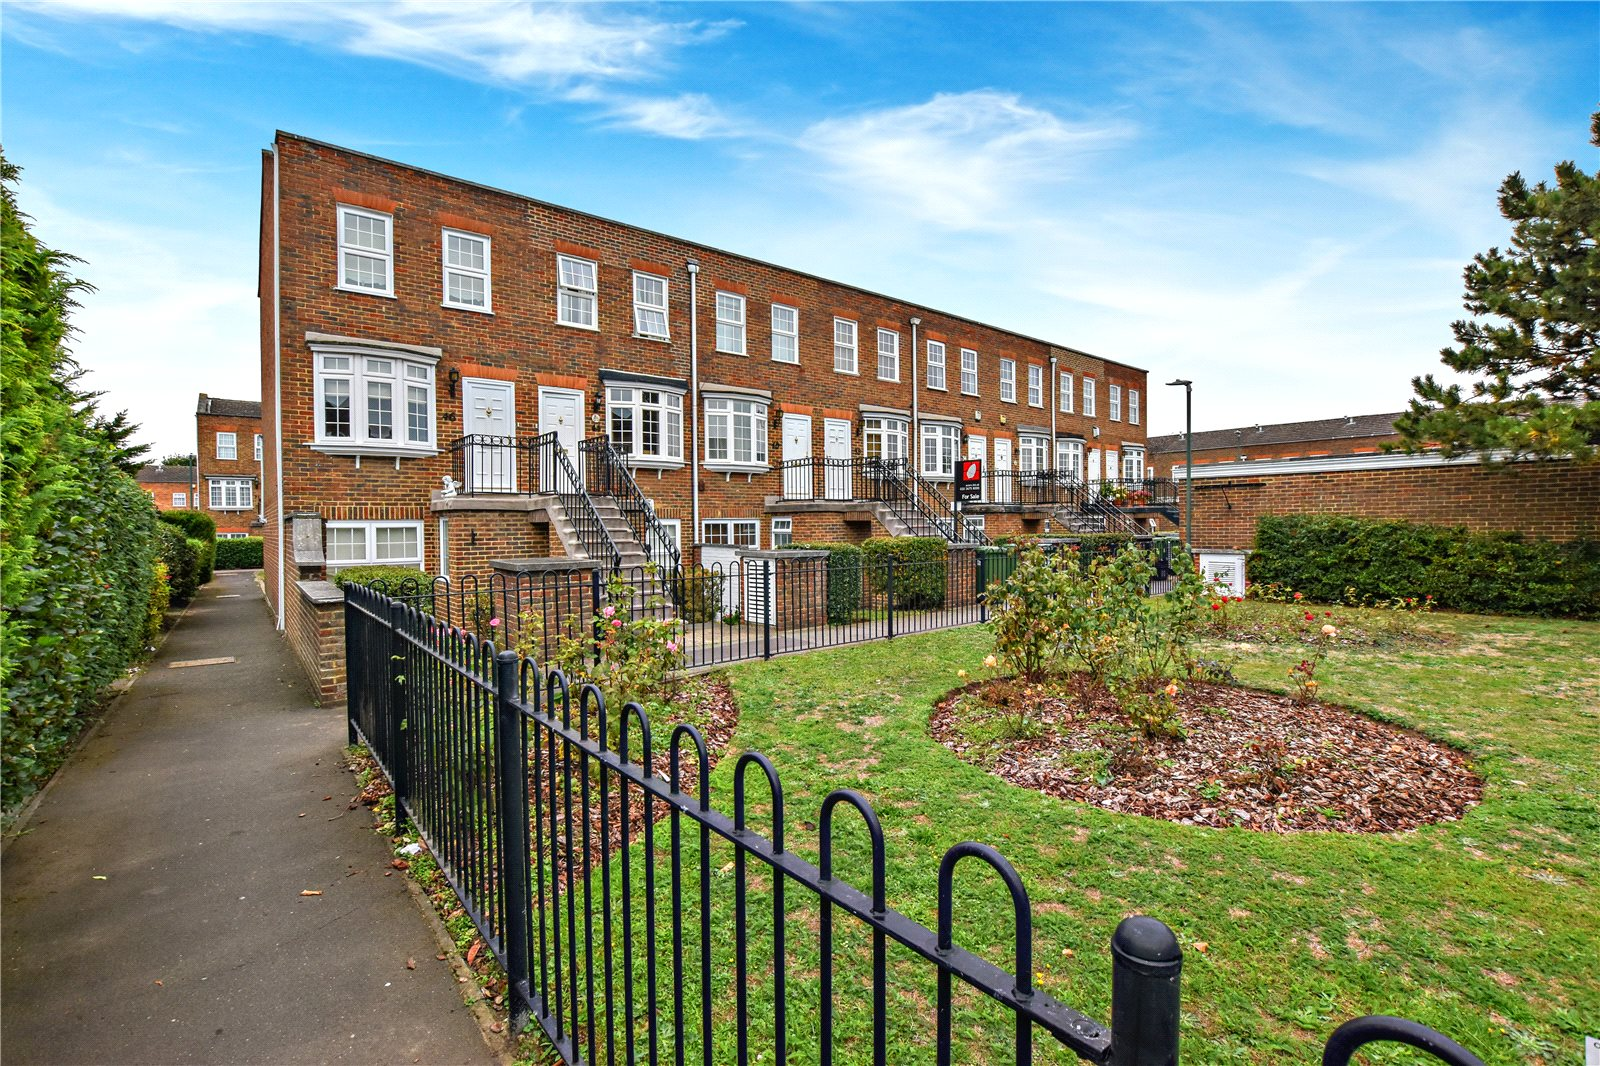 Regency Way, Bexleyheath, Kent, DA6